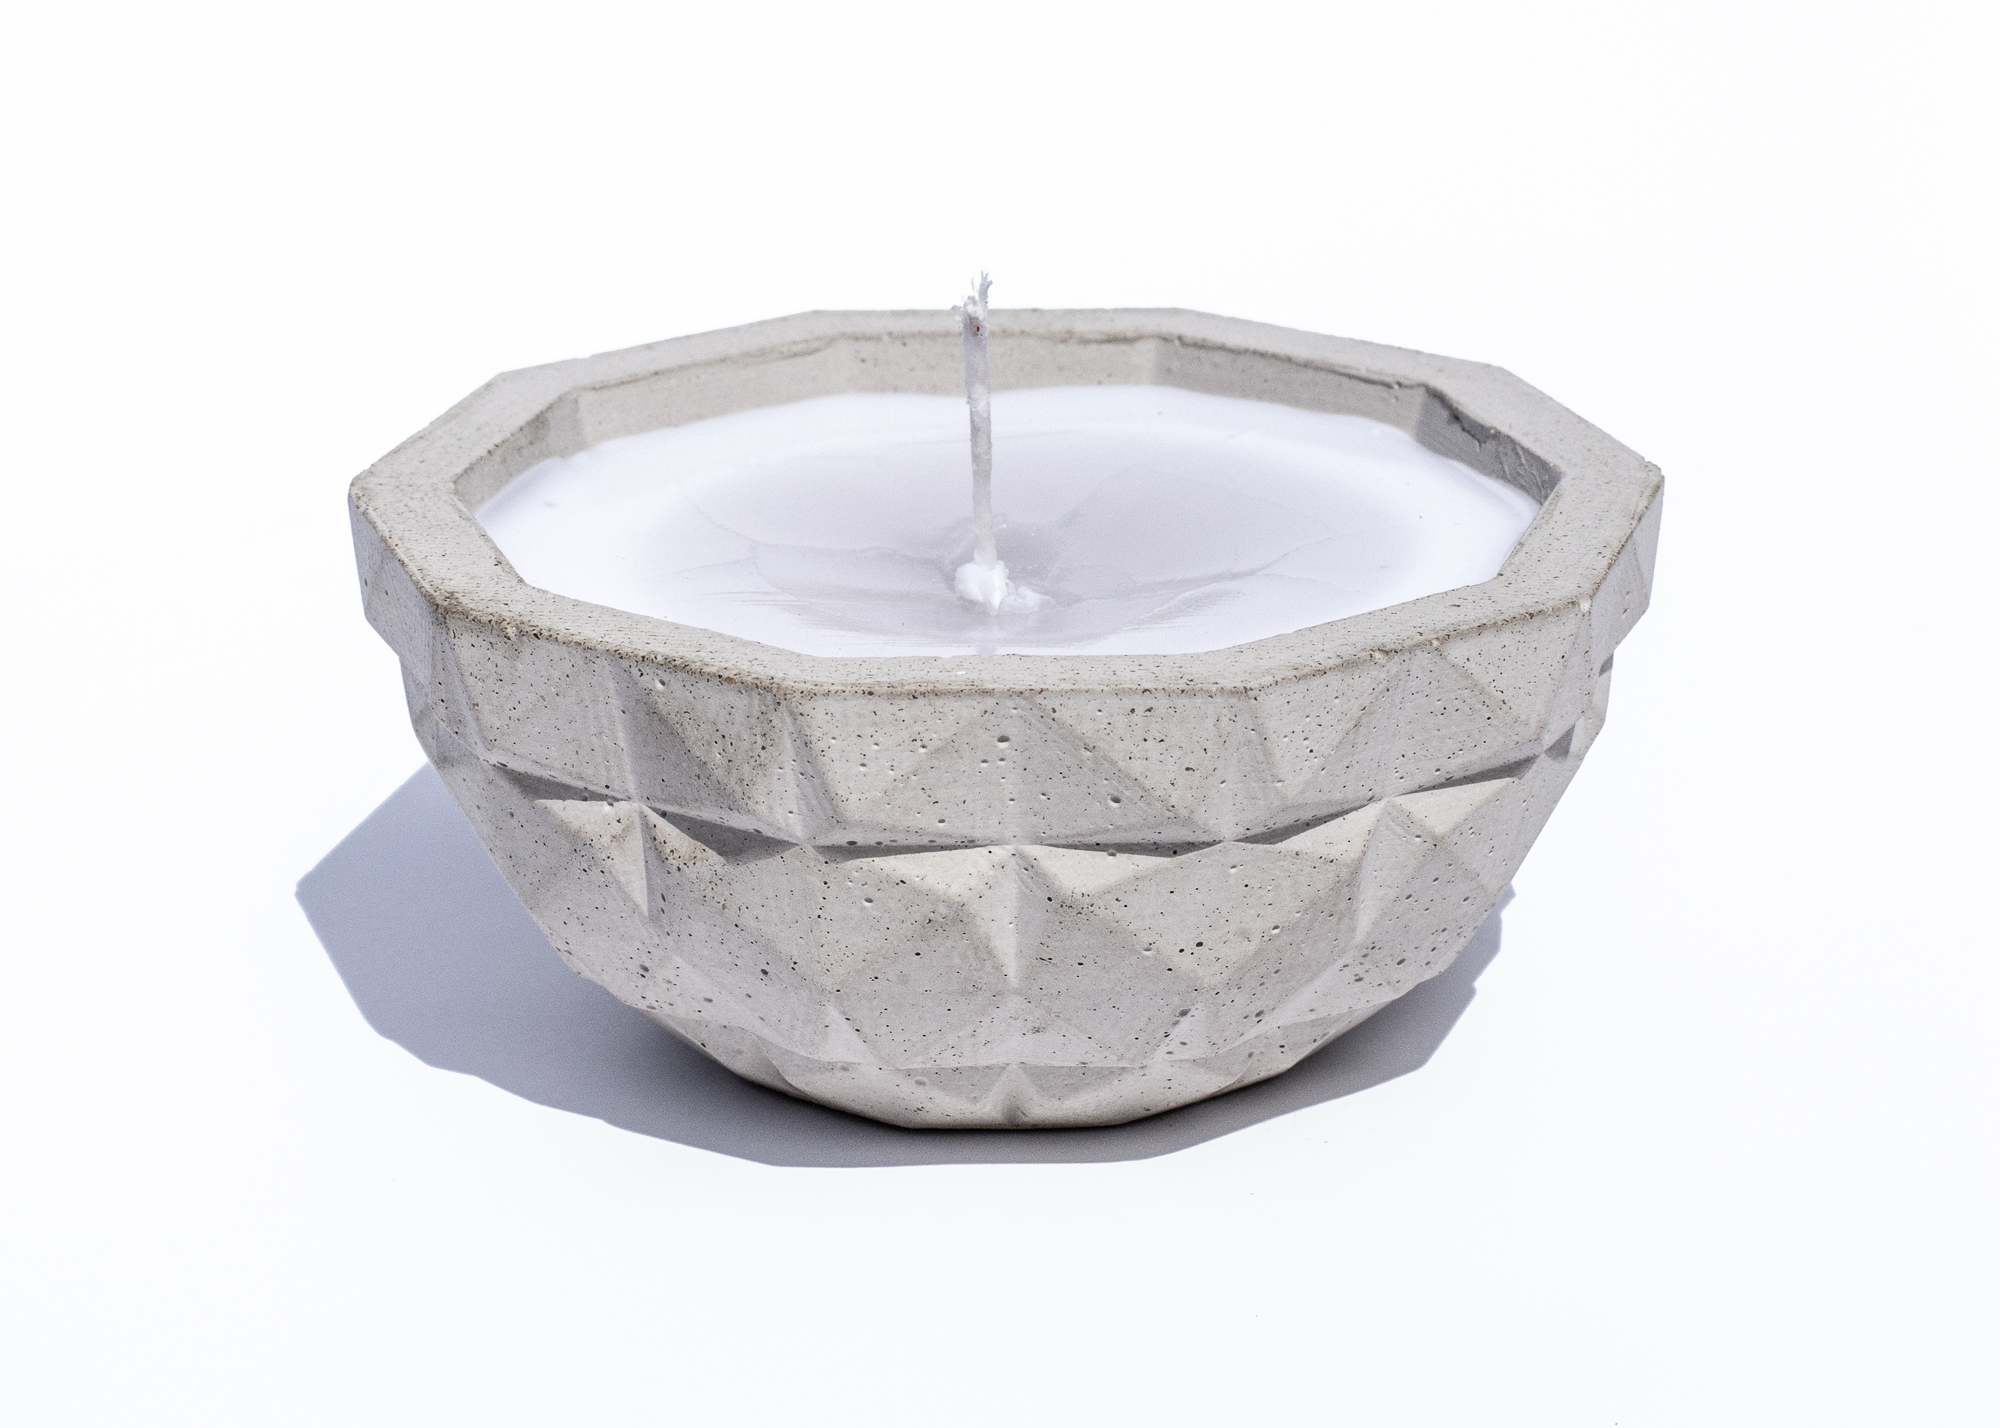 Faceted Concrete Candle/Bowl - 2013